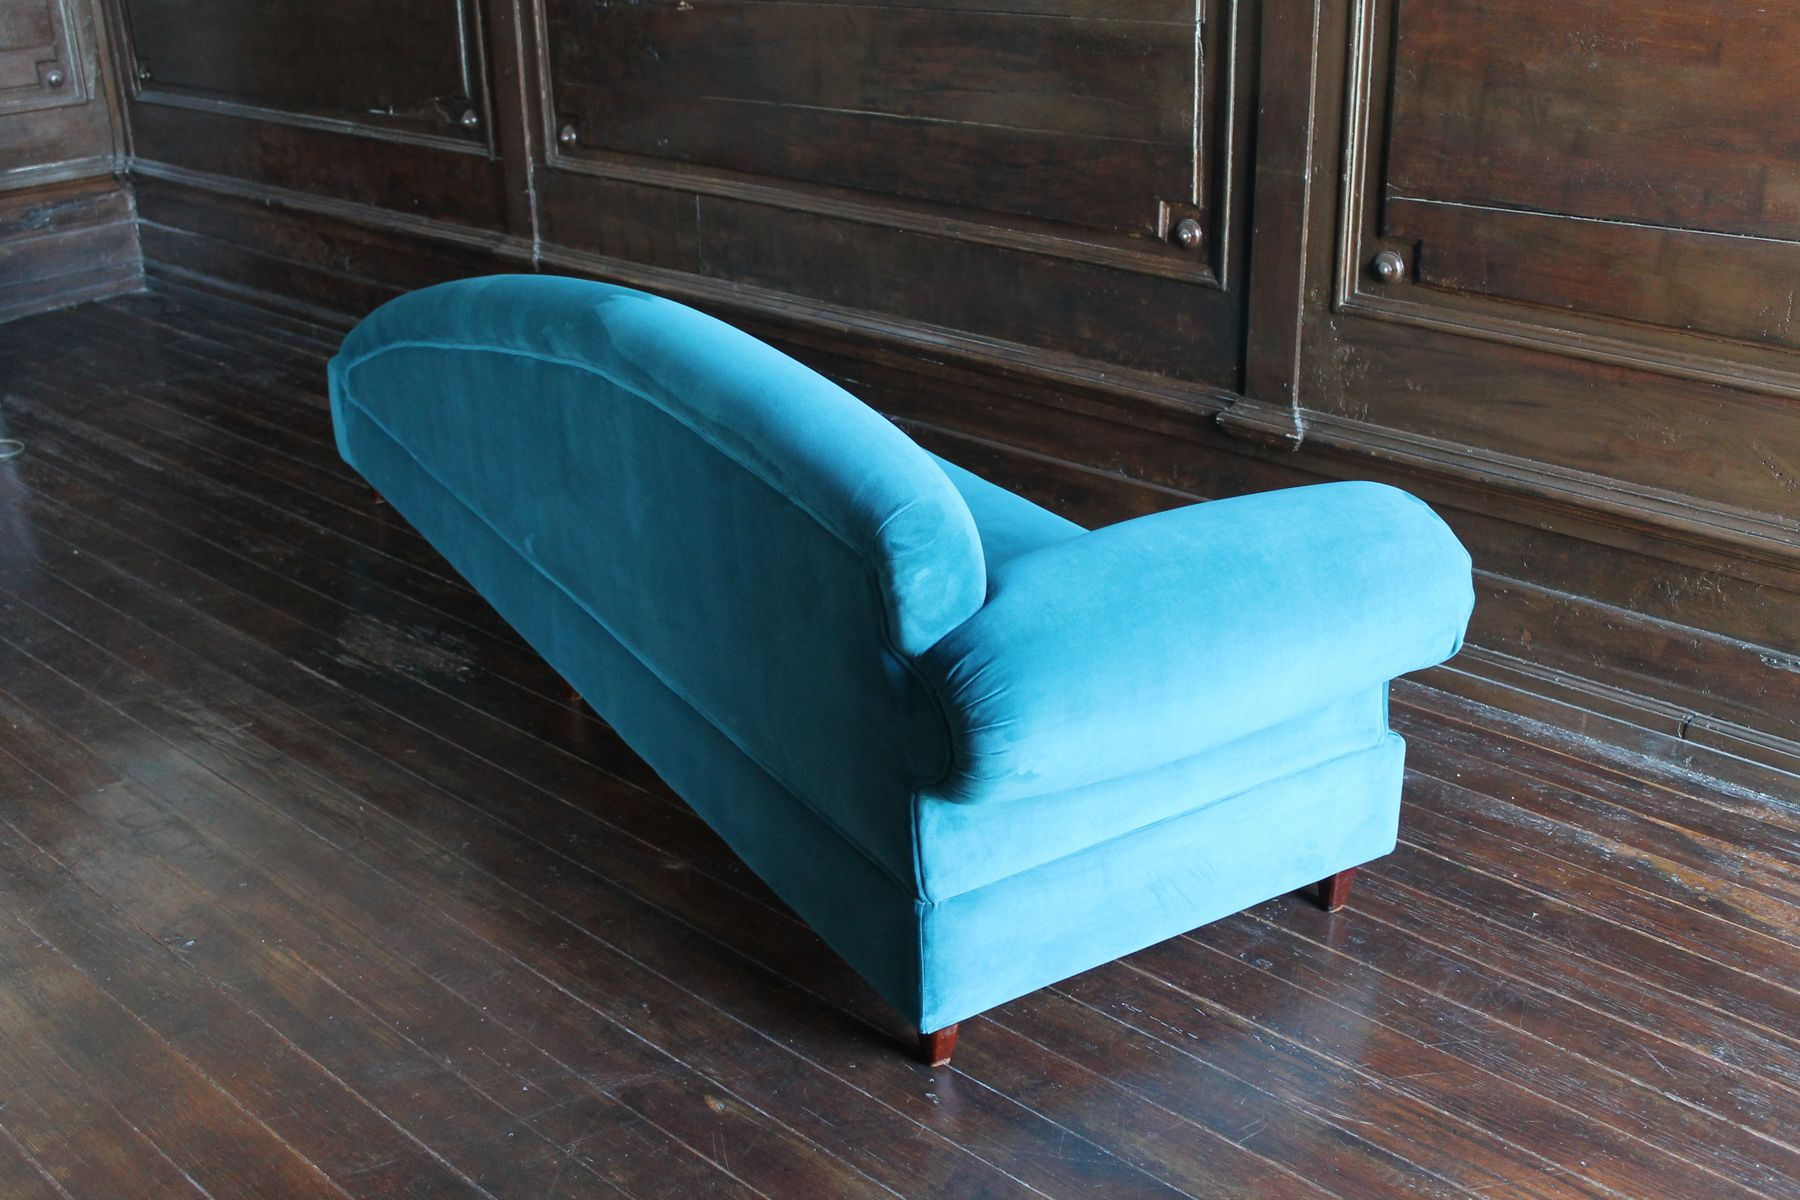 Blue Velvet Sofa Or Chaise Lounge 1970s For Sale At Pamono